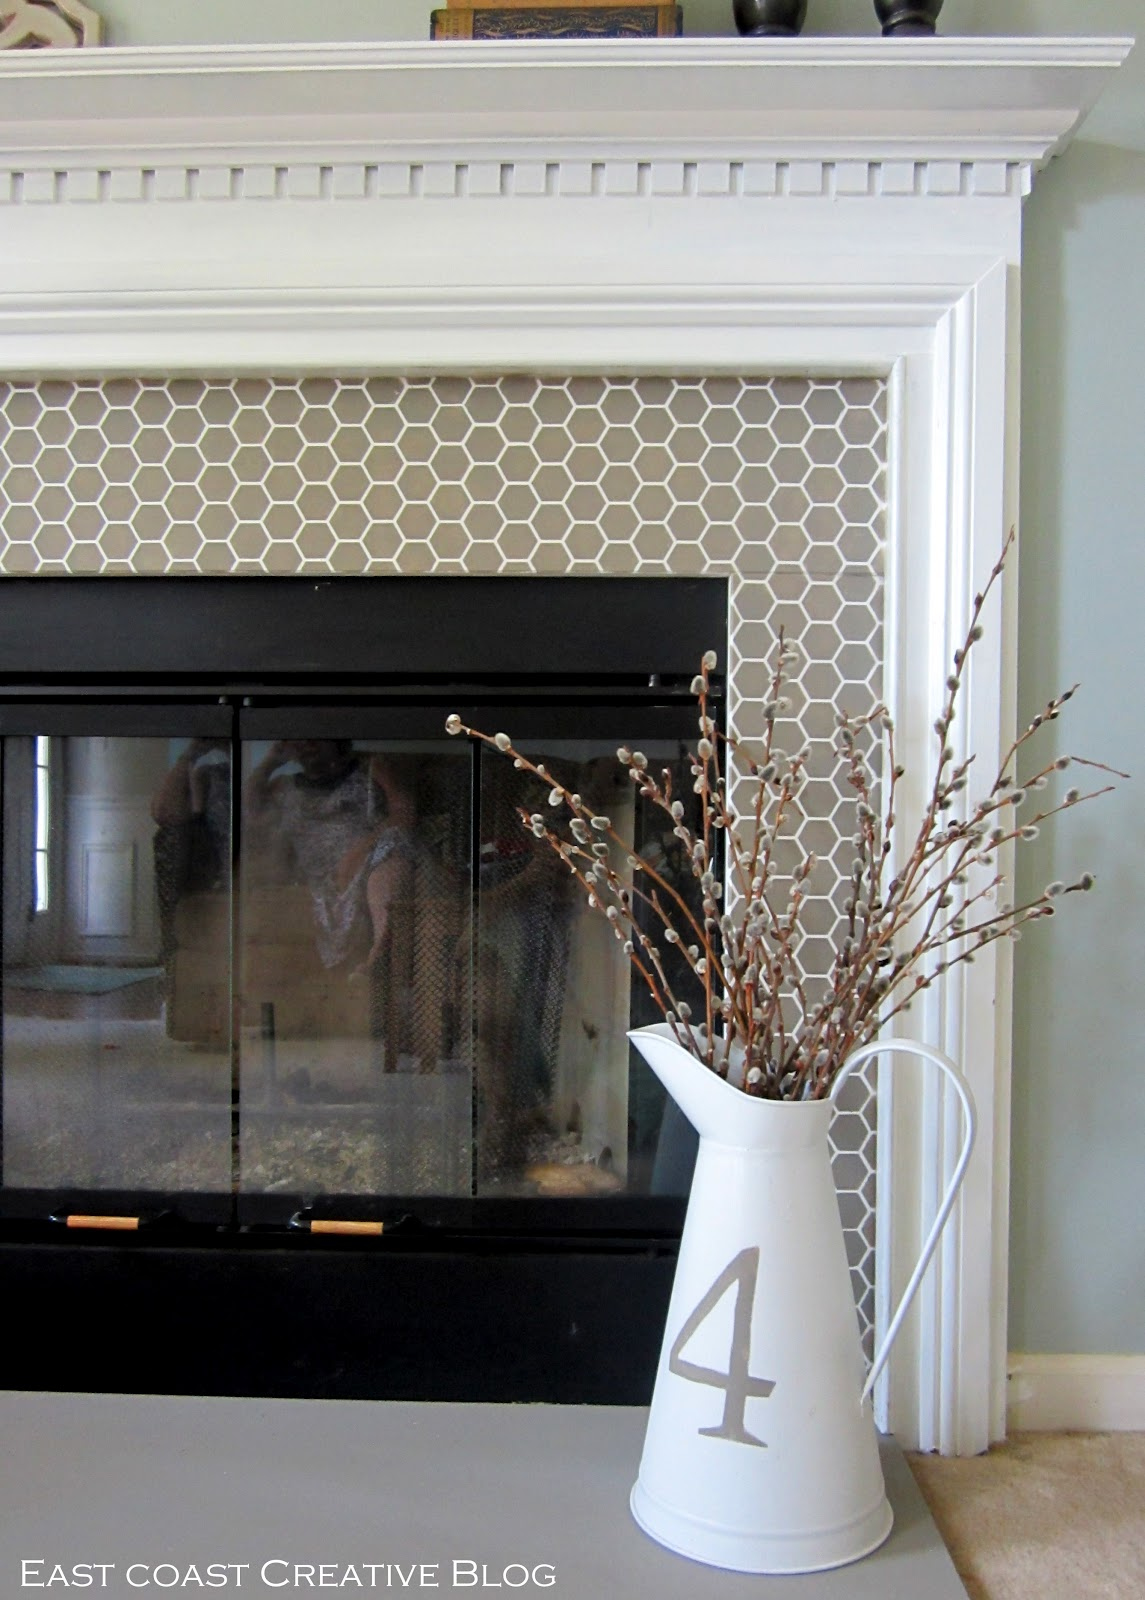 Tile Fireplaces Design Ideas tin tile fireplace design ideas pictures remodel and decor Tile Fireplace Designs Caurius